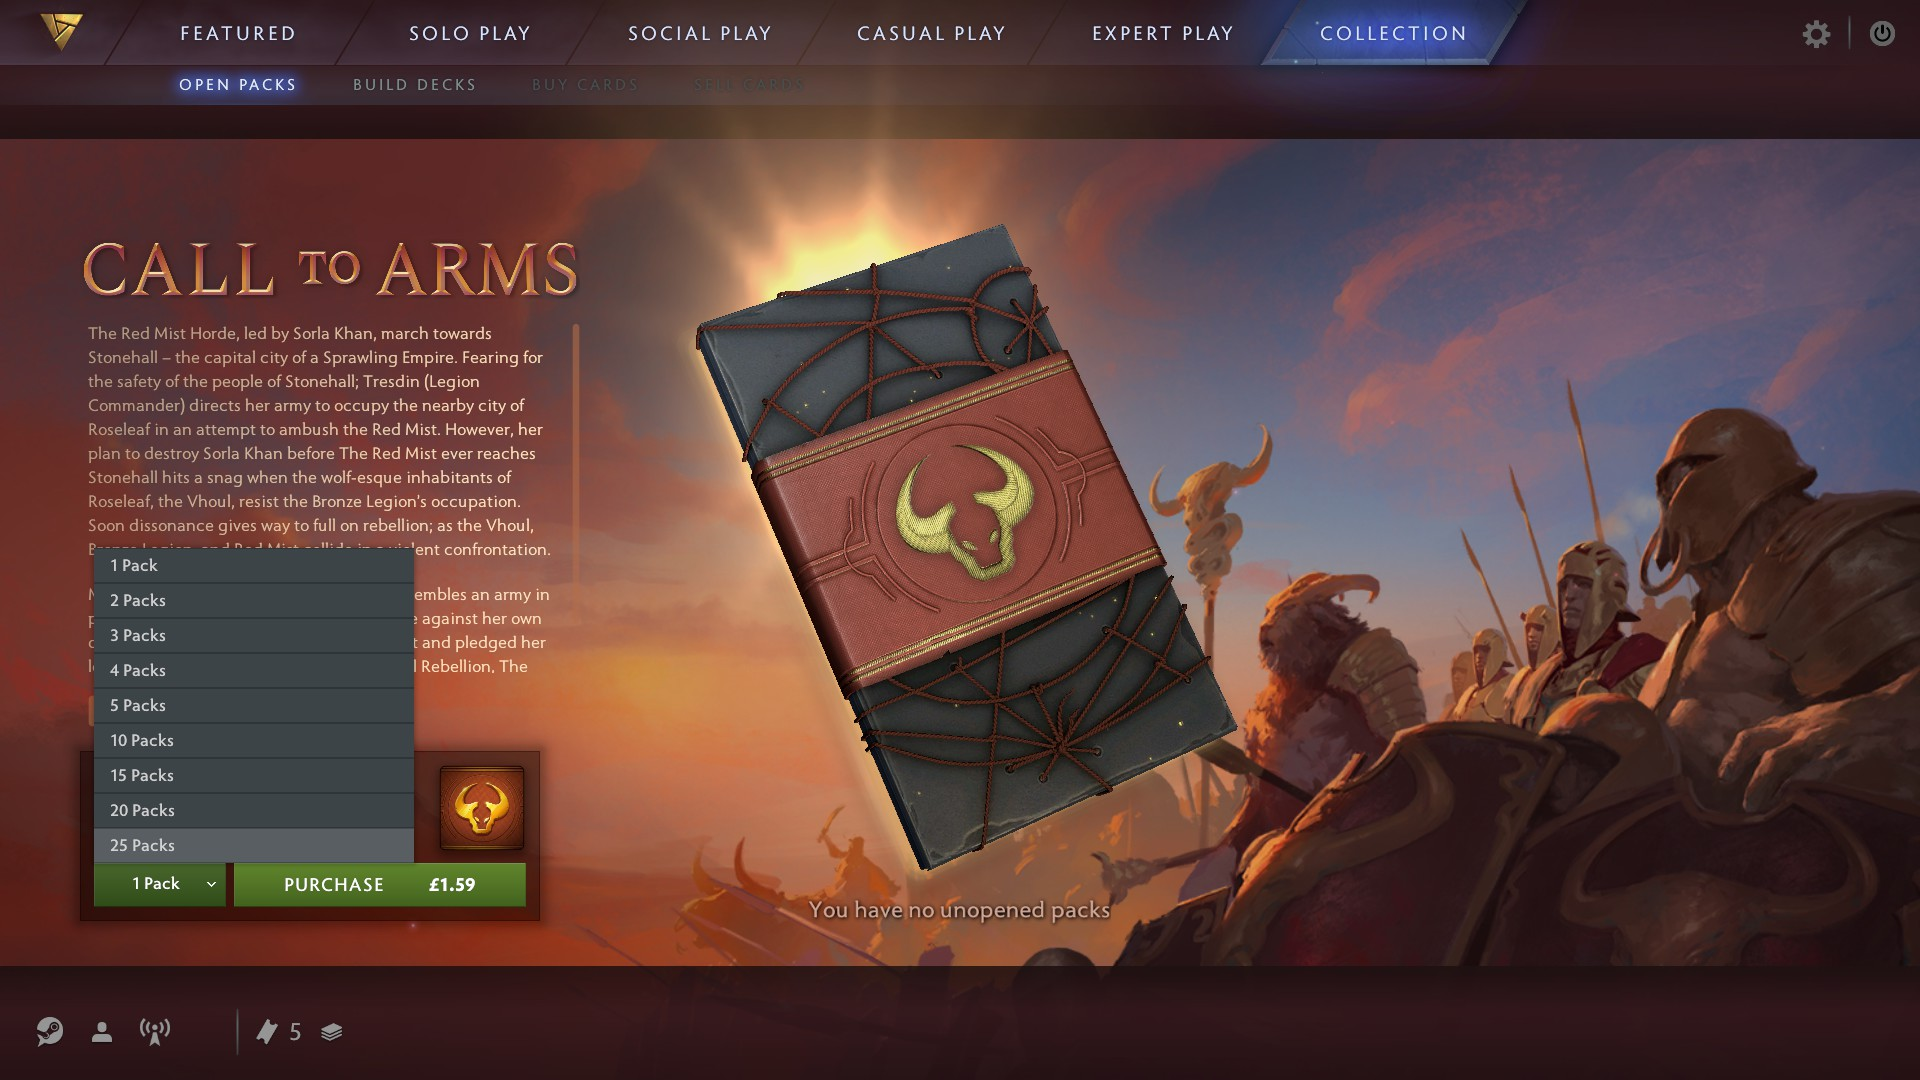 Artifact's booster pack shop. Price in picture is in GBP.